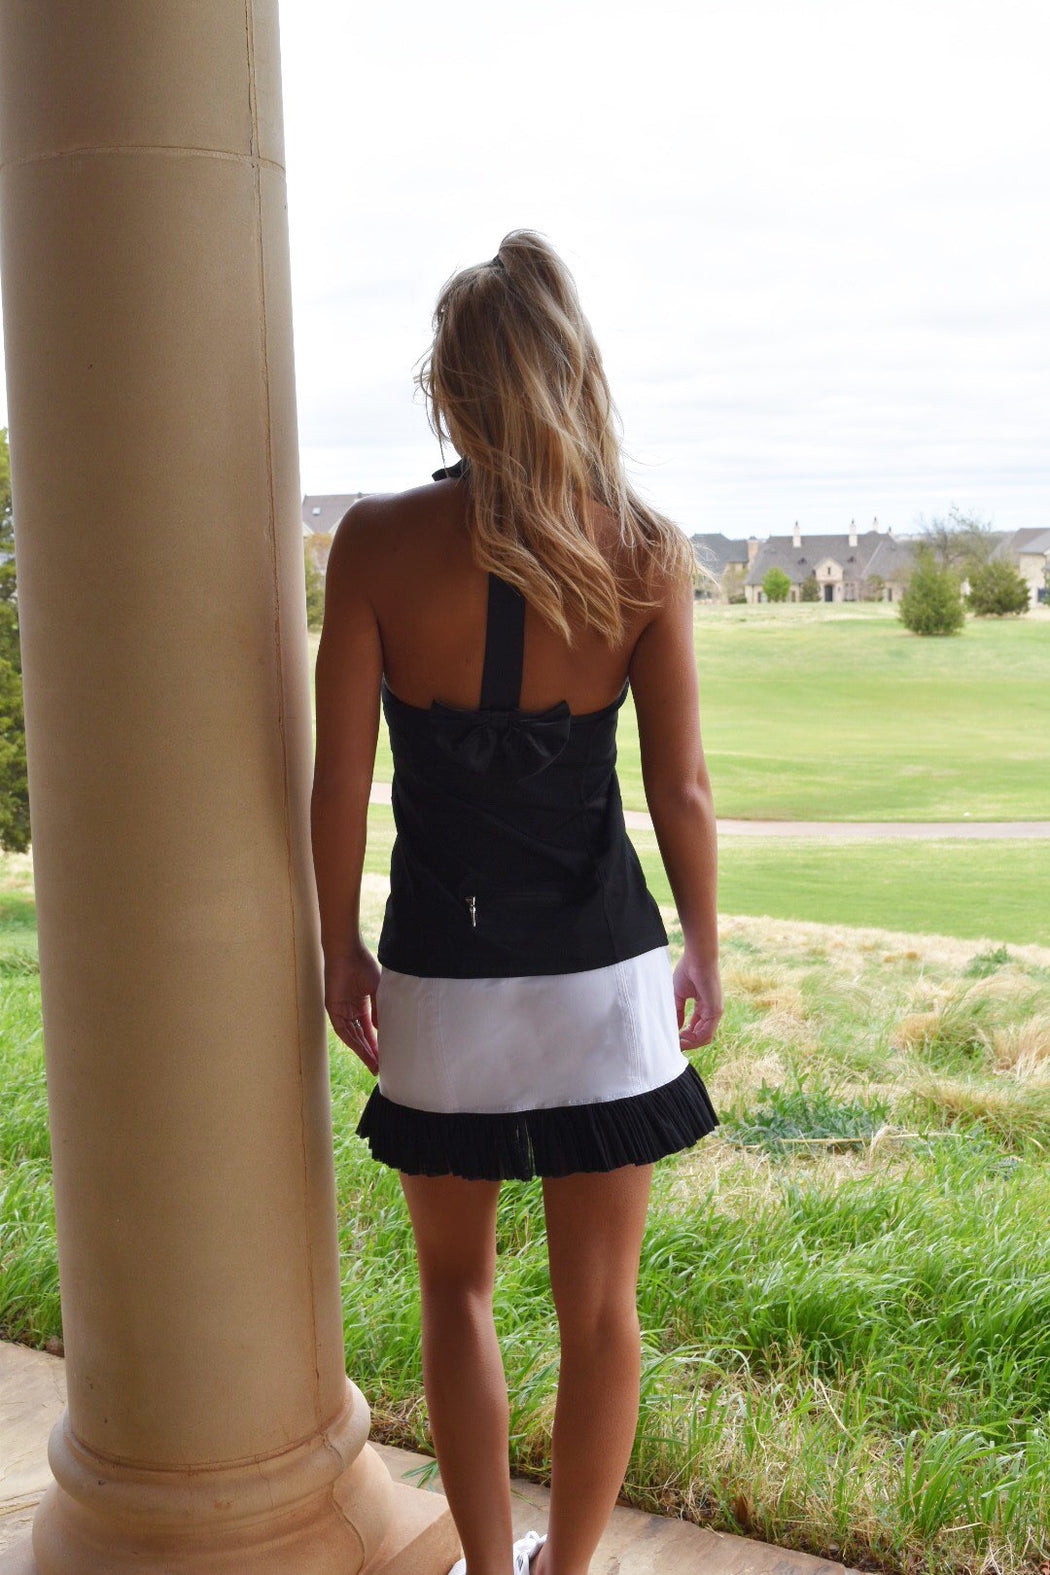 Mesh Ruffle Hem Skirt - Black and White - FlirTee Golf